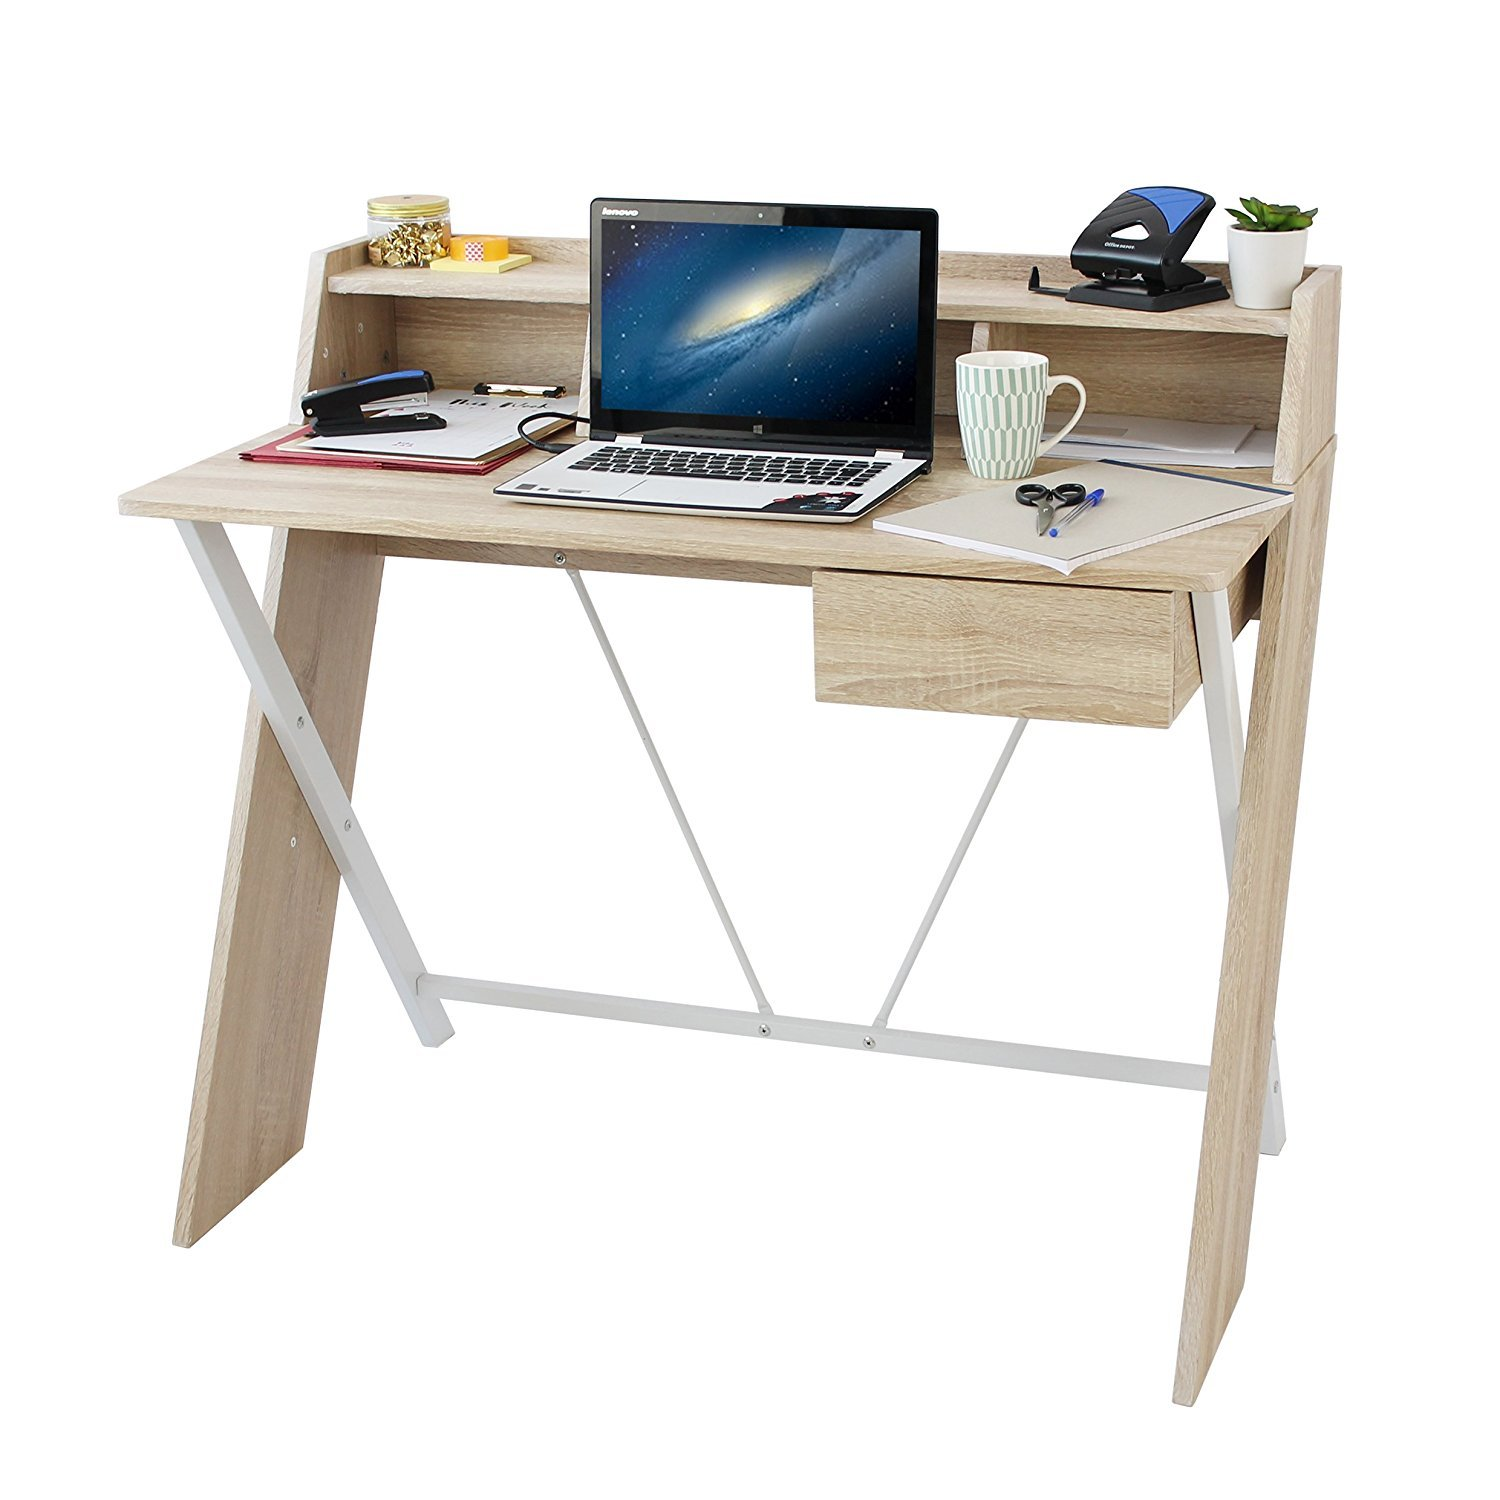 Save On Goods UK Home office computer desk, student work station writing study table. Oak effect white metal tubular frame